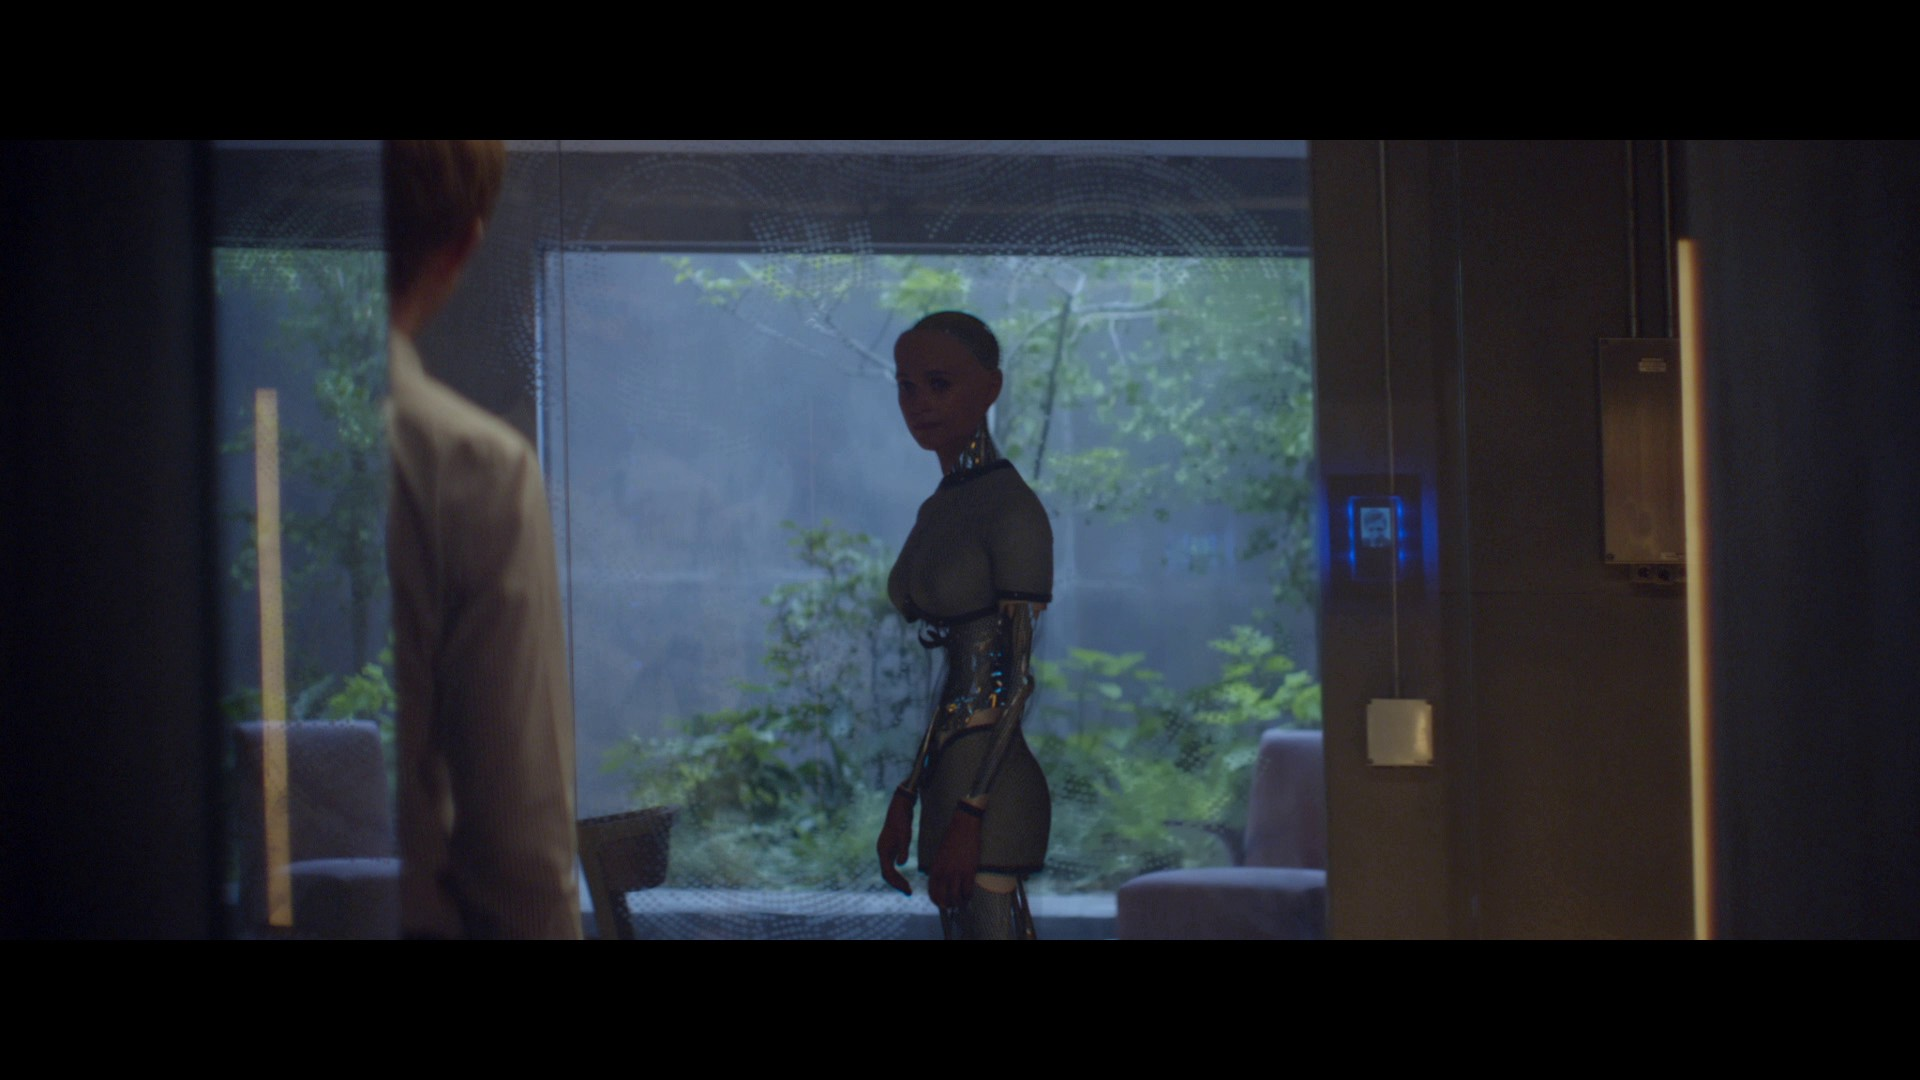 Ava and Caleb from the film ex machina having a conversation